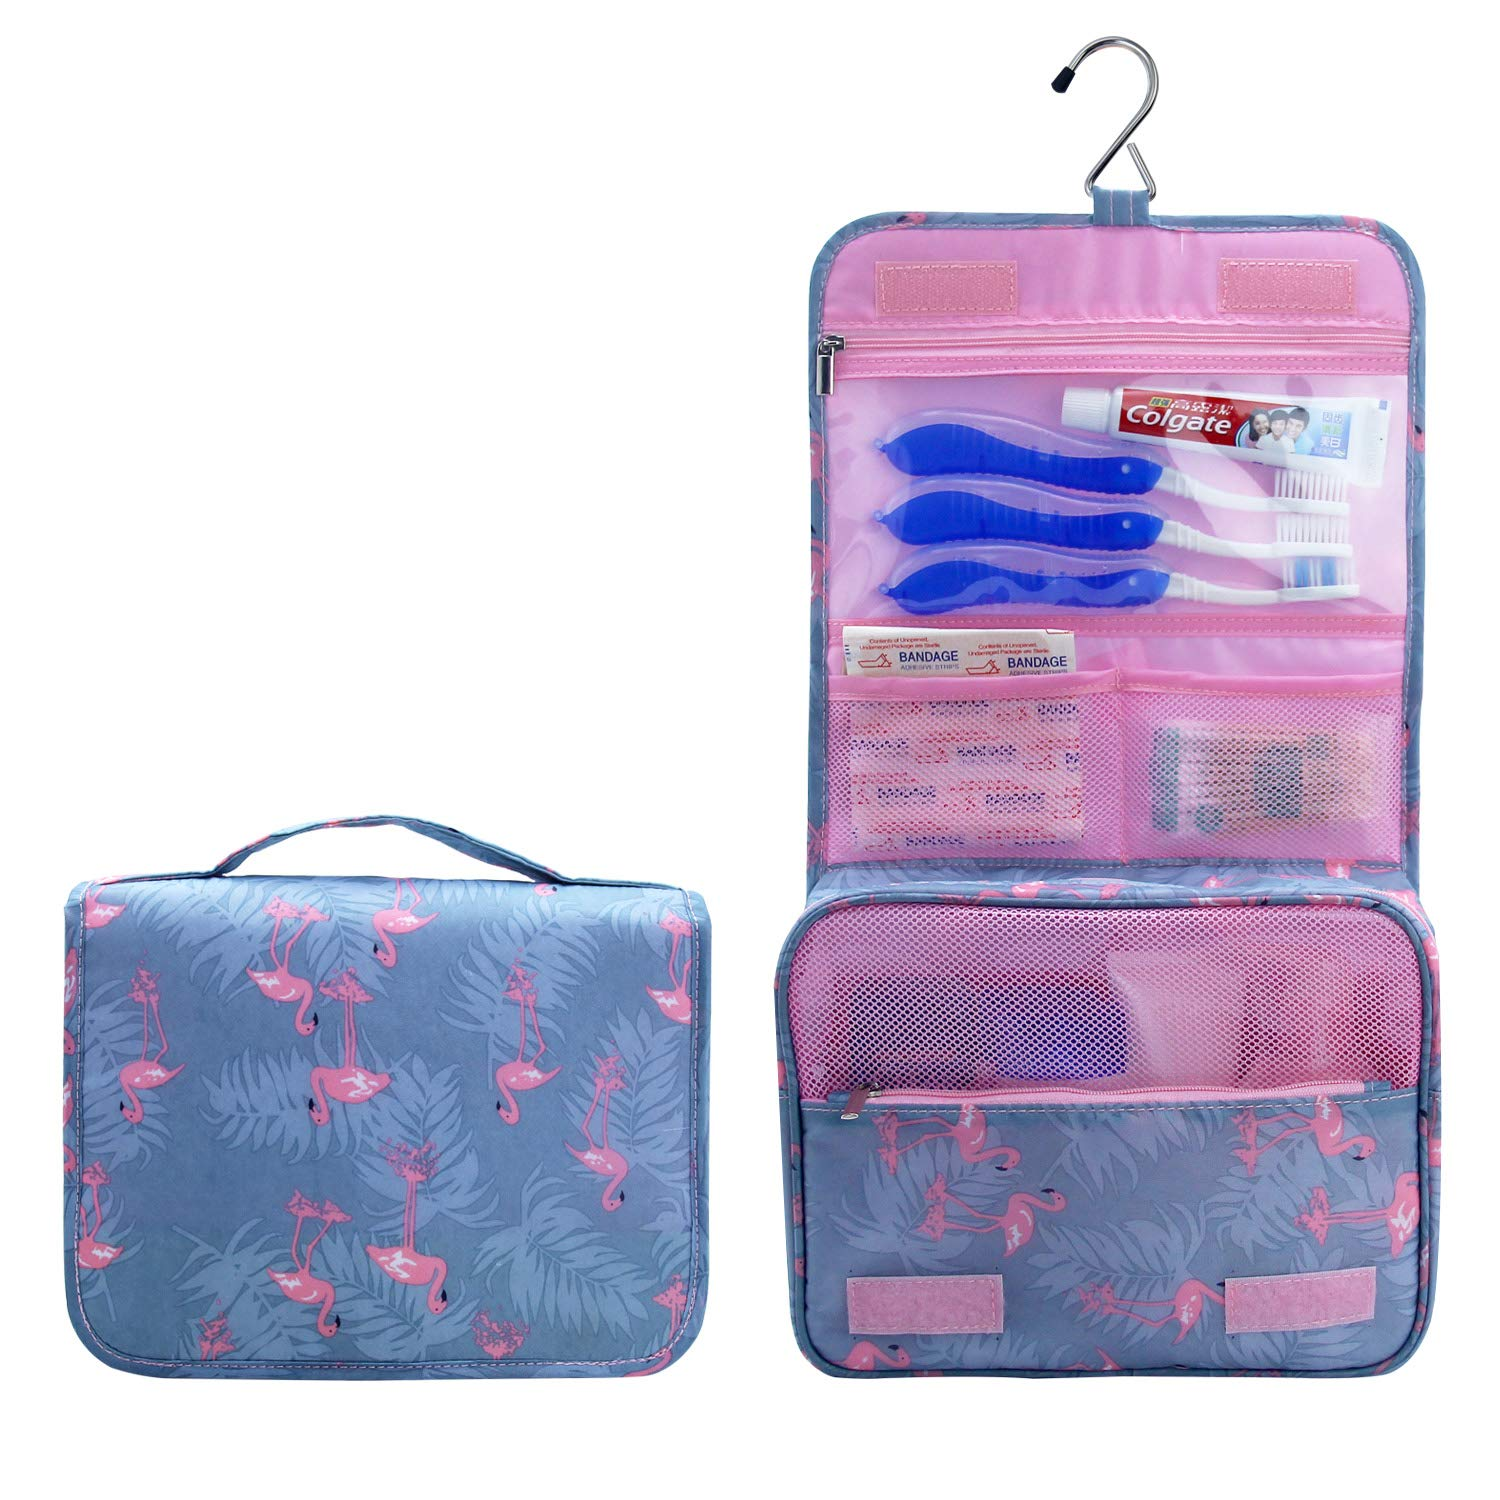 Travel Hanging Toiletry Bag for Men Women Travel Kit Shaving Bag Waterproof Wash Bag Makeup Organizer for Bathroom Shower Blue Relavel